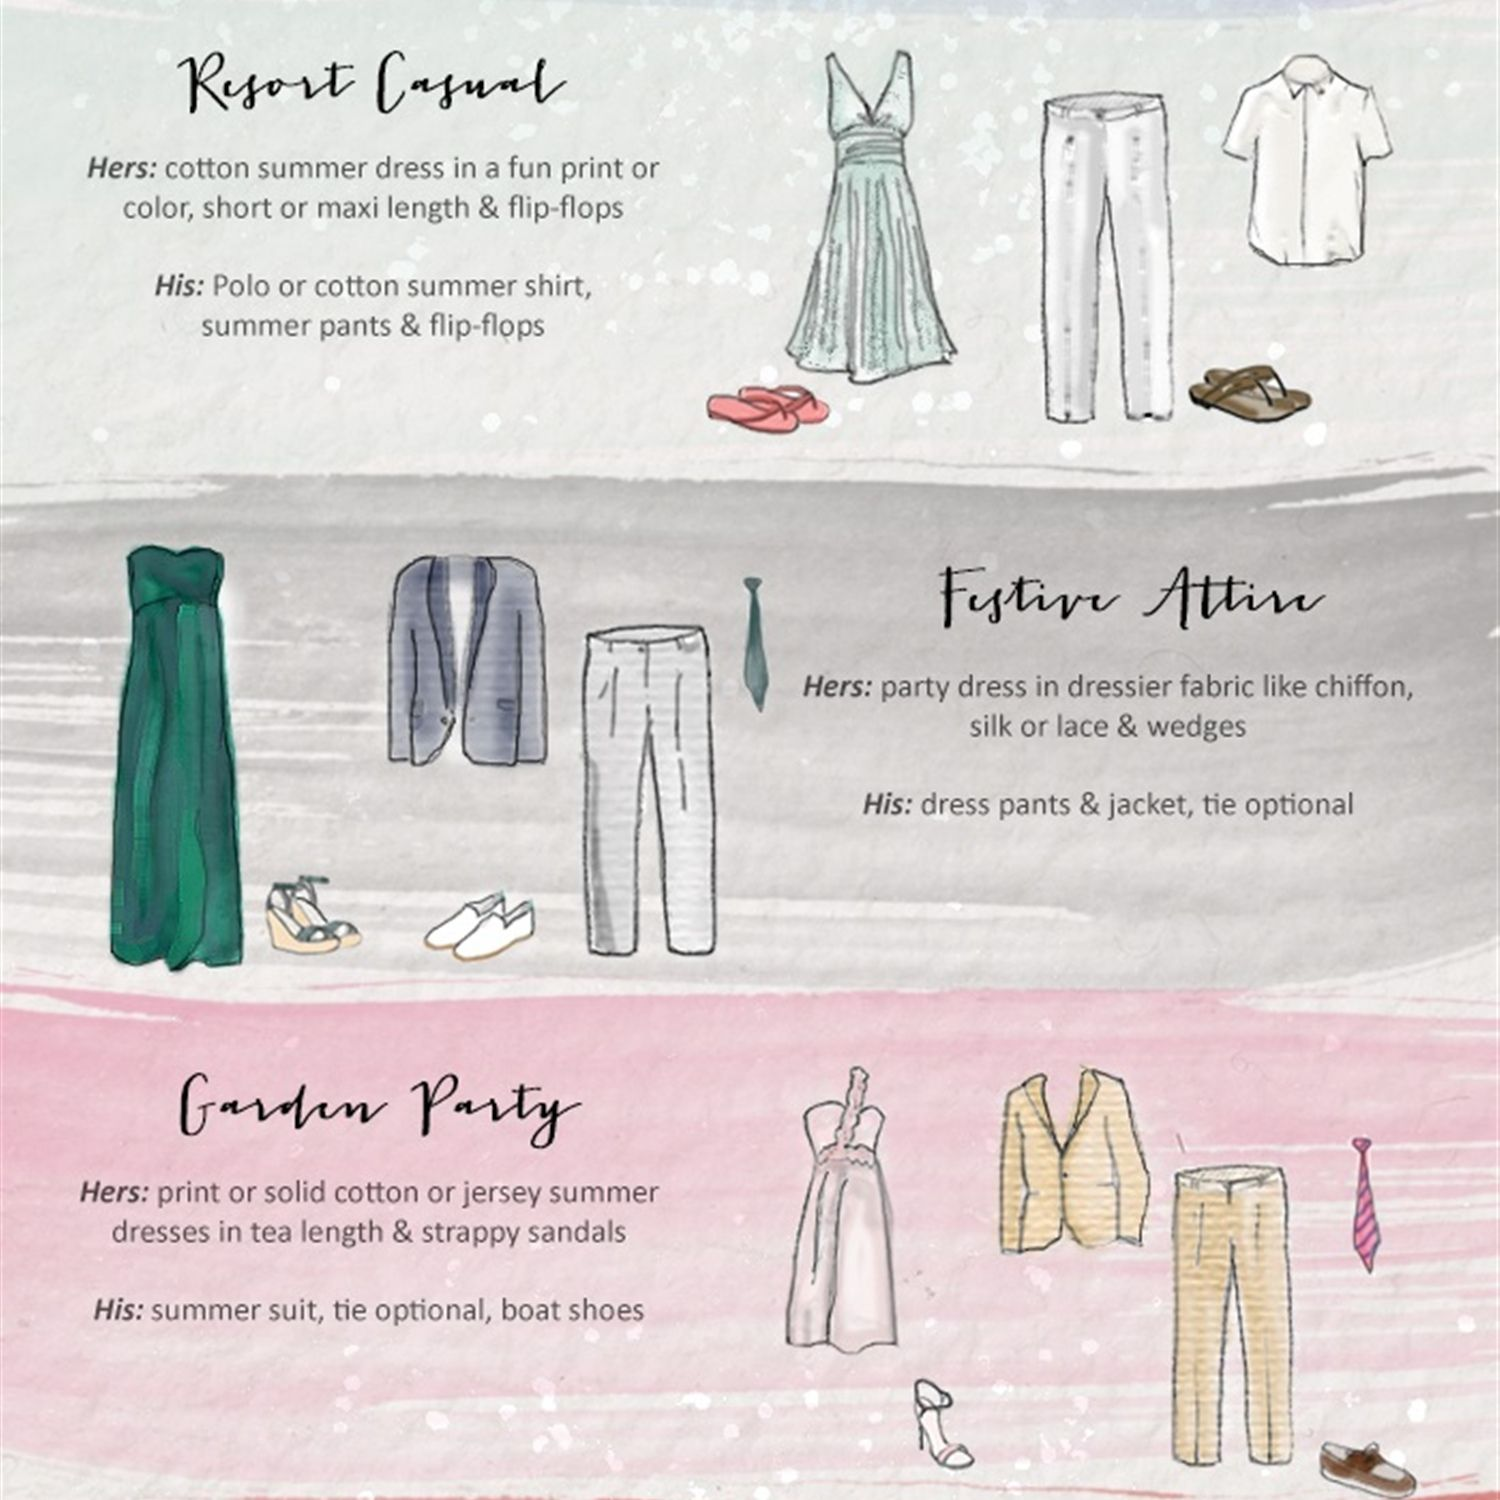 Destination Wedding Dress Code Dress Code Wedding